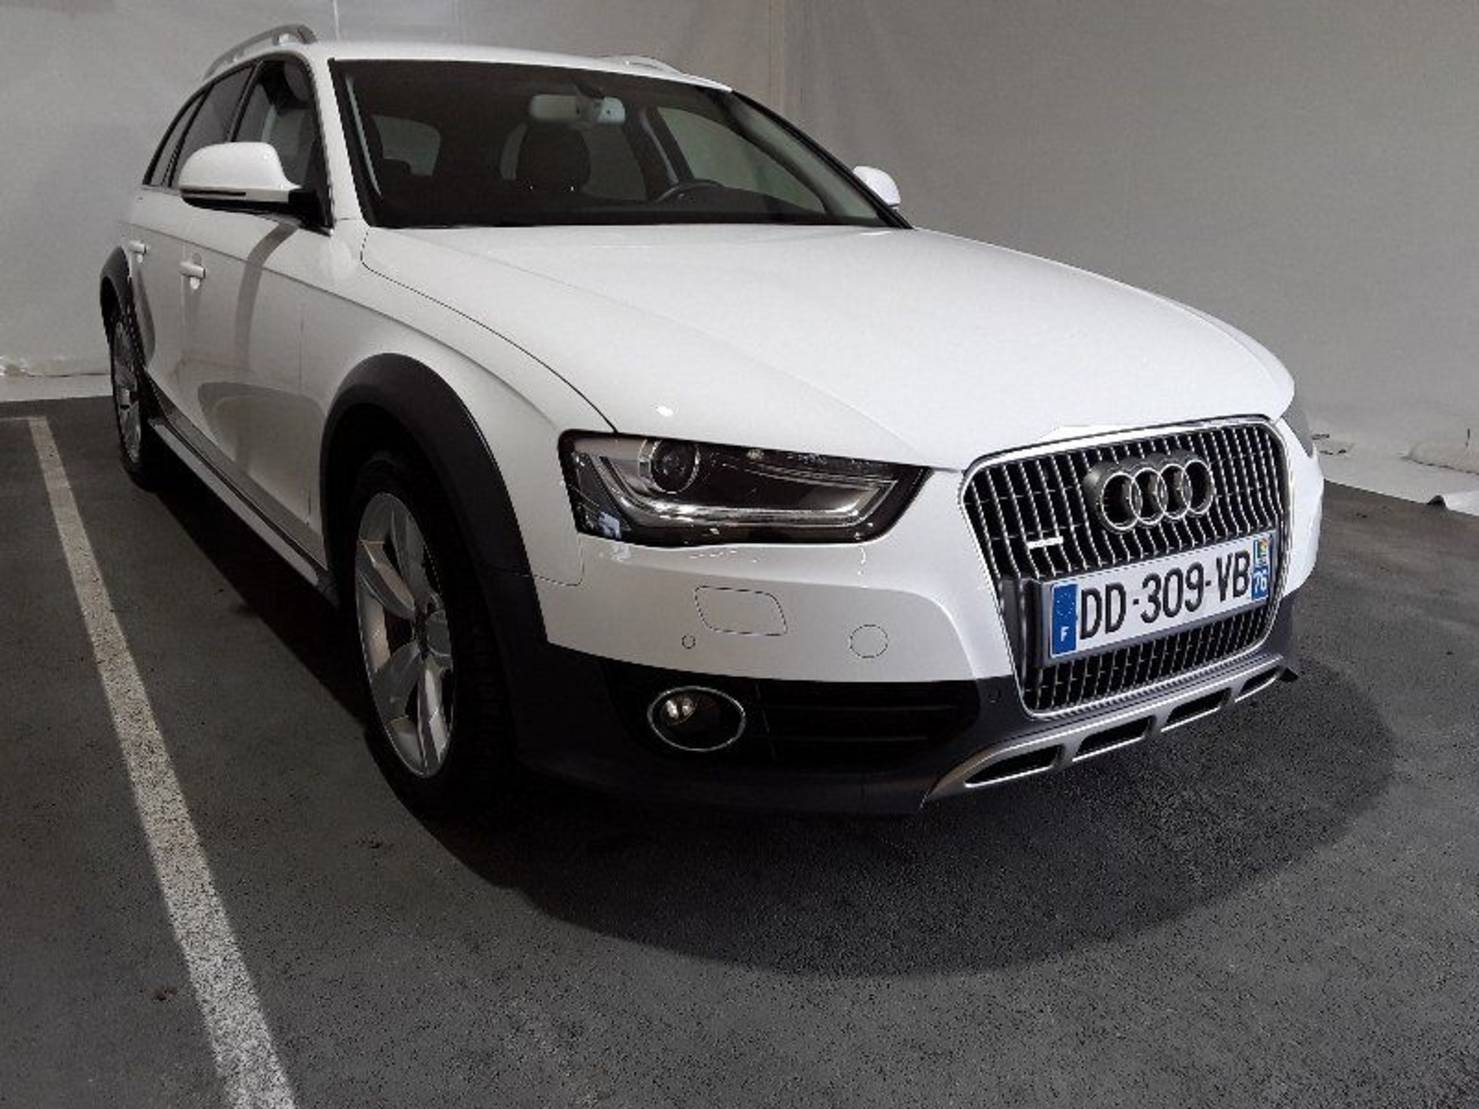 Audi A4 Allroad 2.0 TDI 177 DPF, Ambition Luxe S Tronic detail1